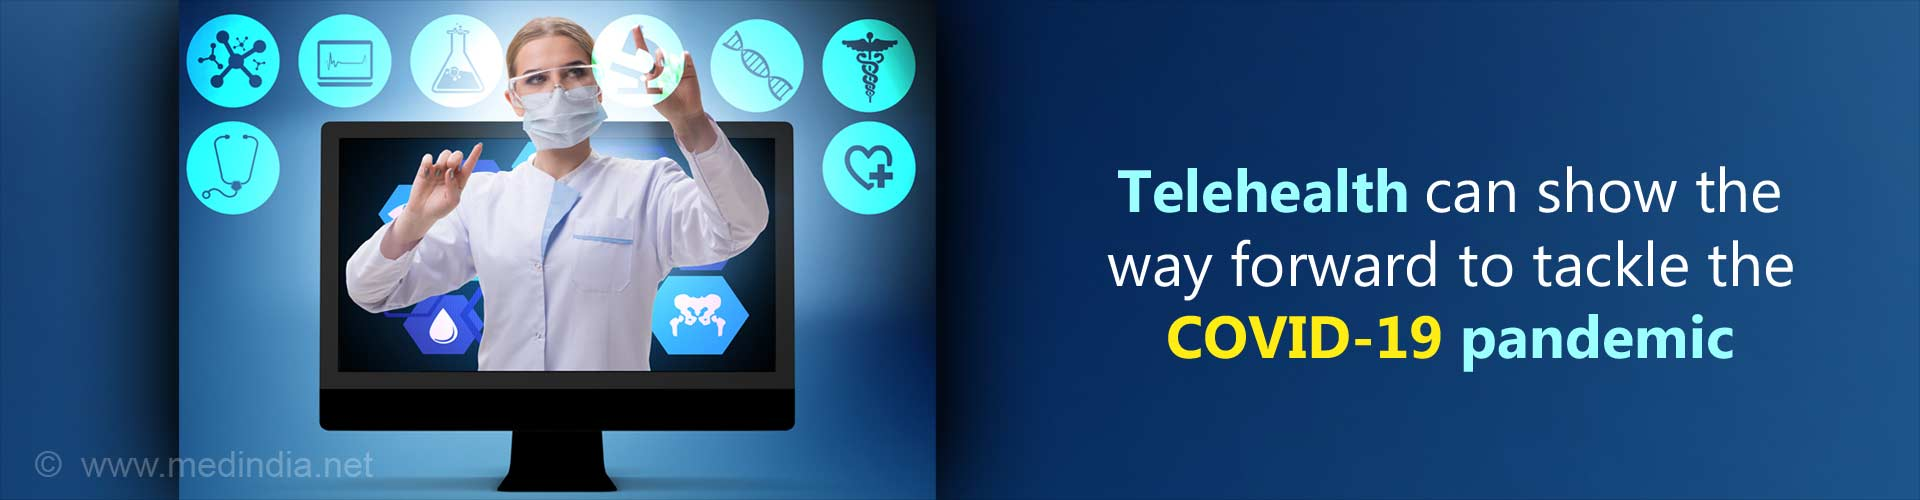 Telehealth Well Positioned to Tackle and Contain COVID-19 Outbreak